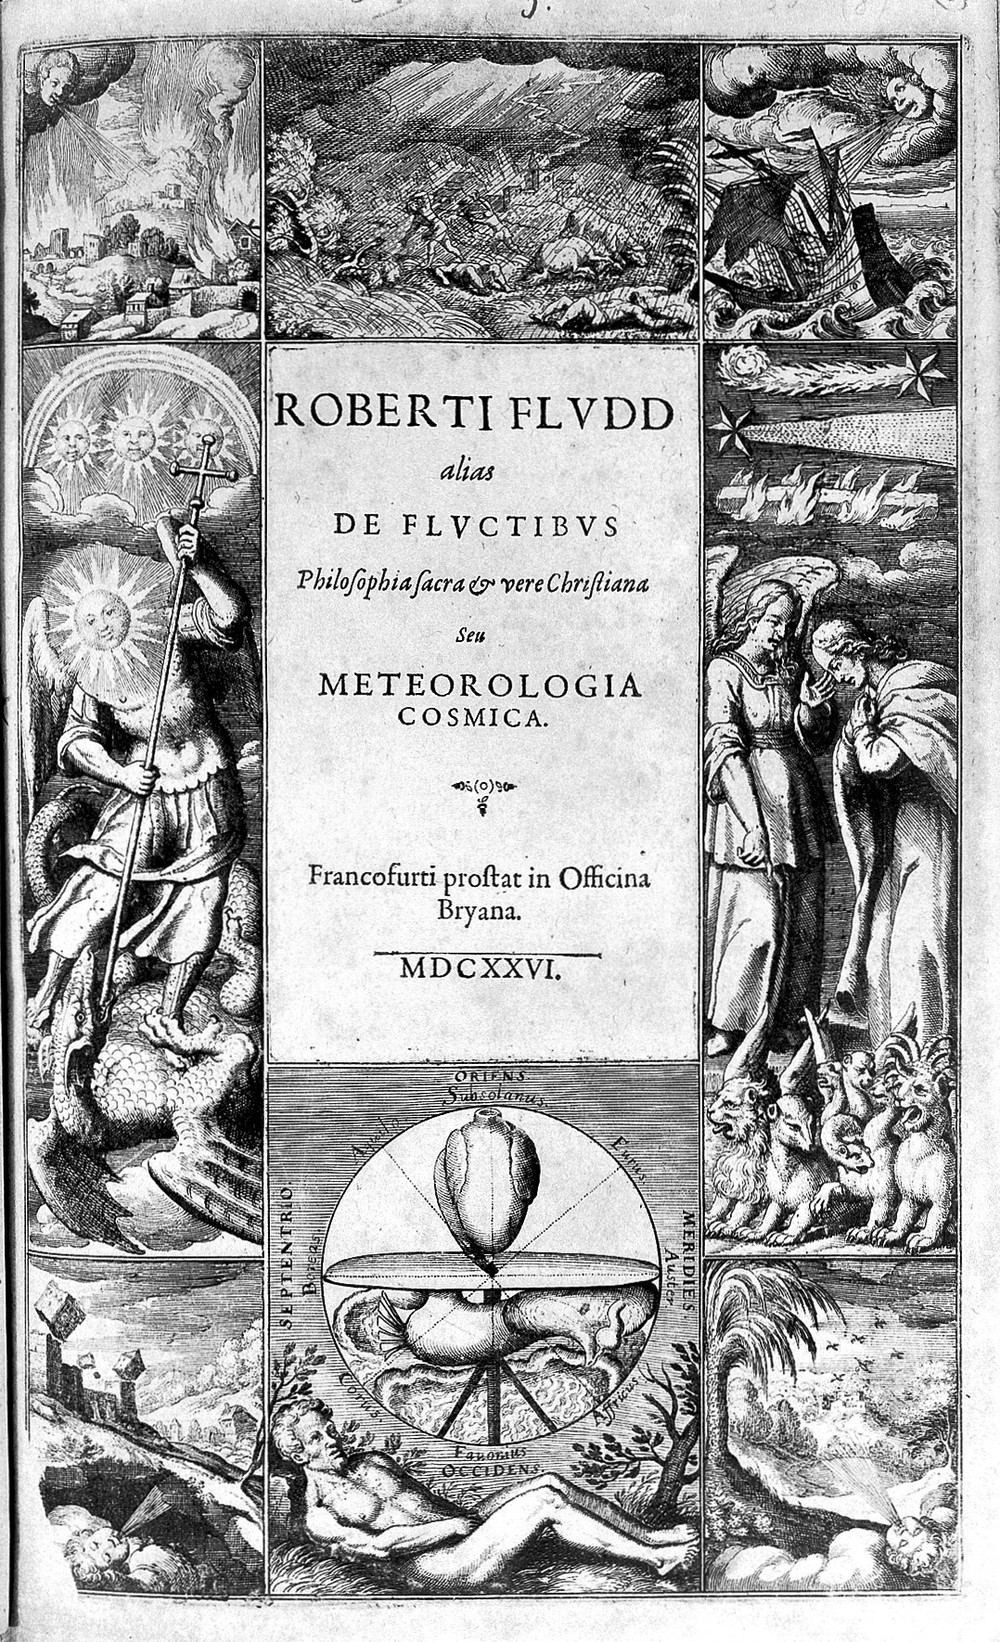 Fig.1 - Frontispiece of Philosophia Sacra et Vere Christiana seu Meteorologia Cosmica  (Frankfurt, 1623) with engravingsby Matthäus Merian ( 1593 –1650). (image courtesy of Gallica)